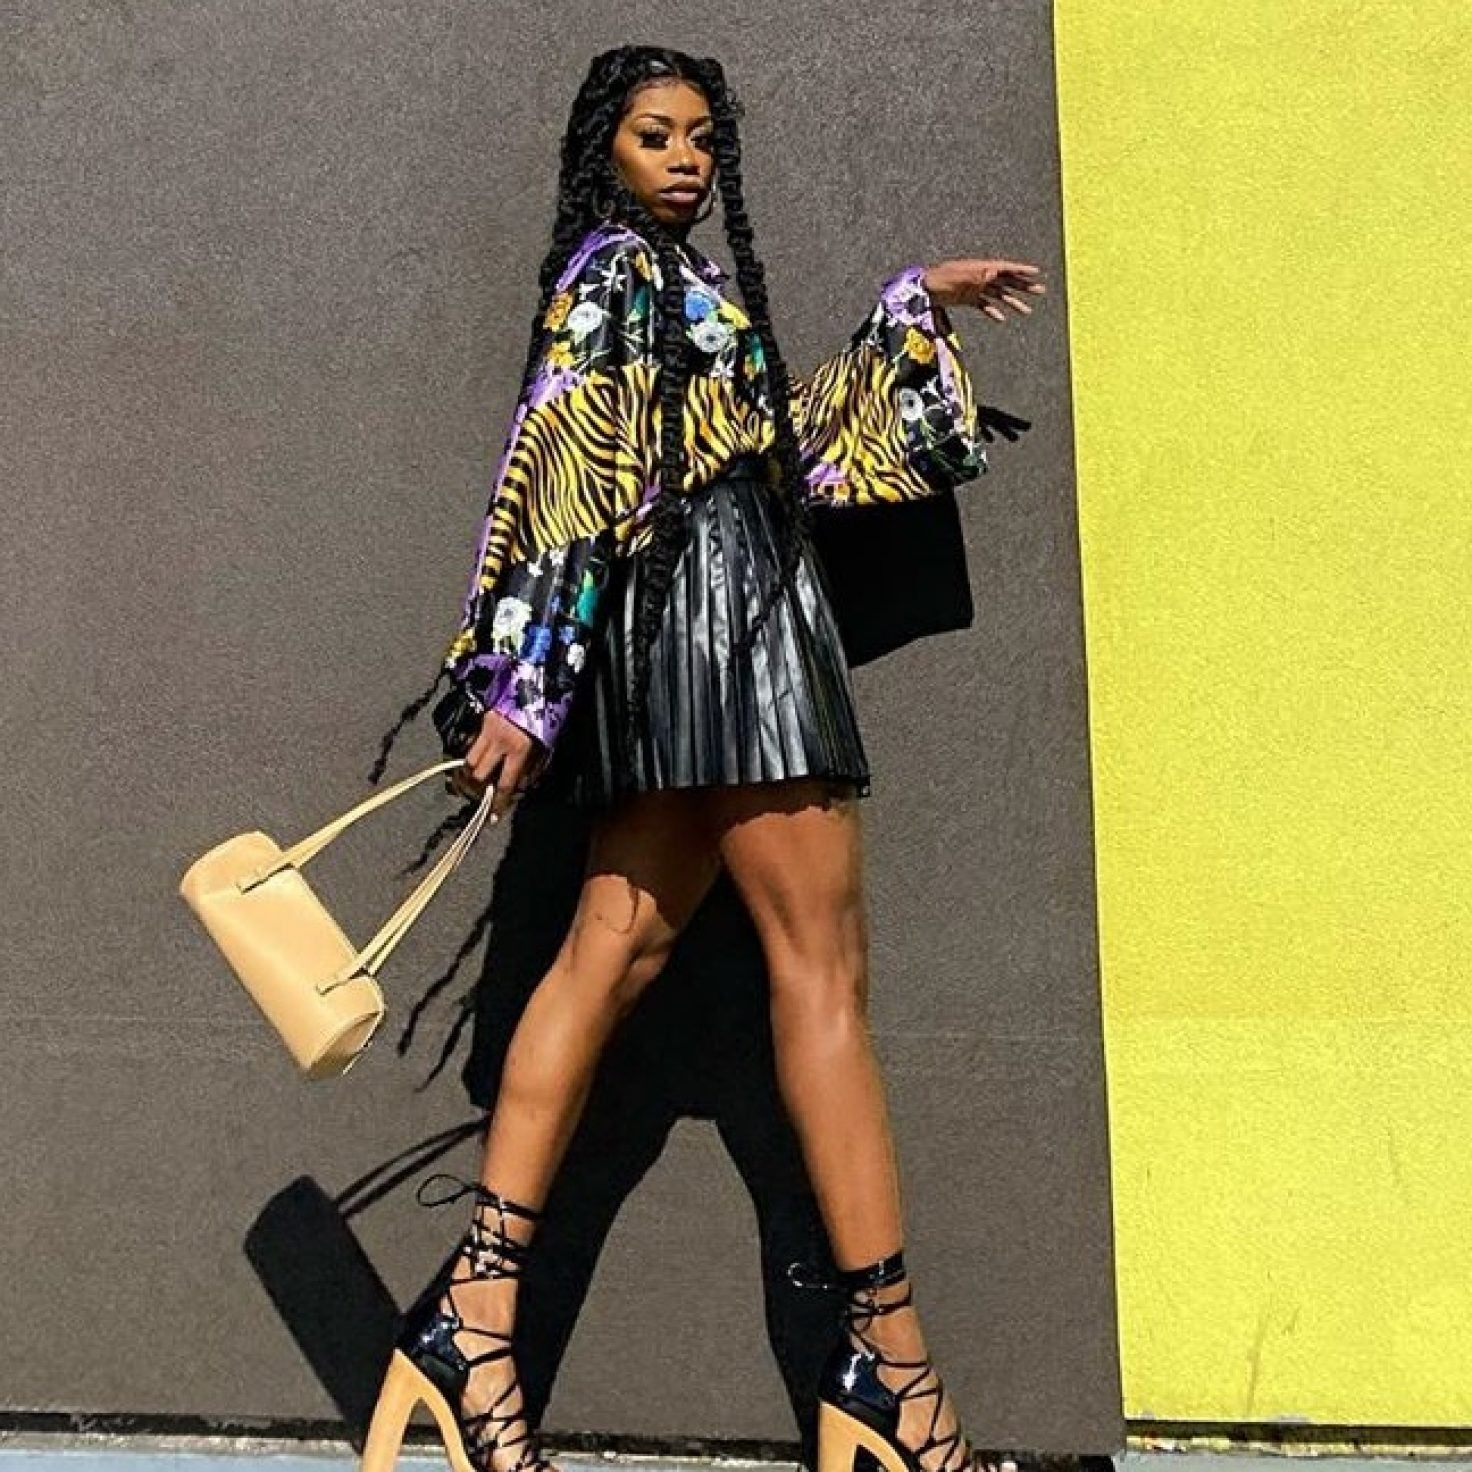 The Best Dressed Black Creatives During Quarantine This Week